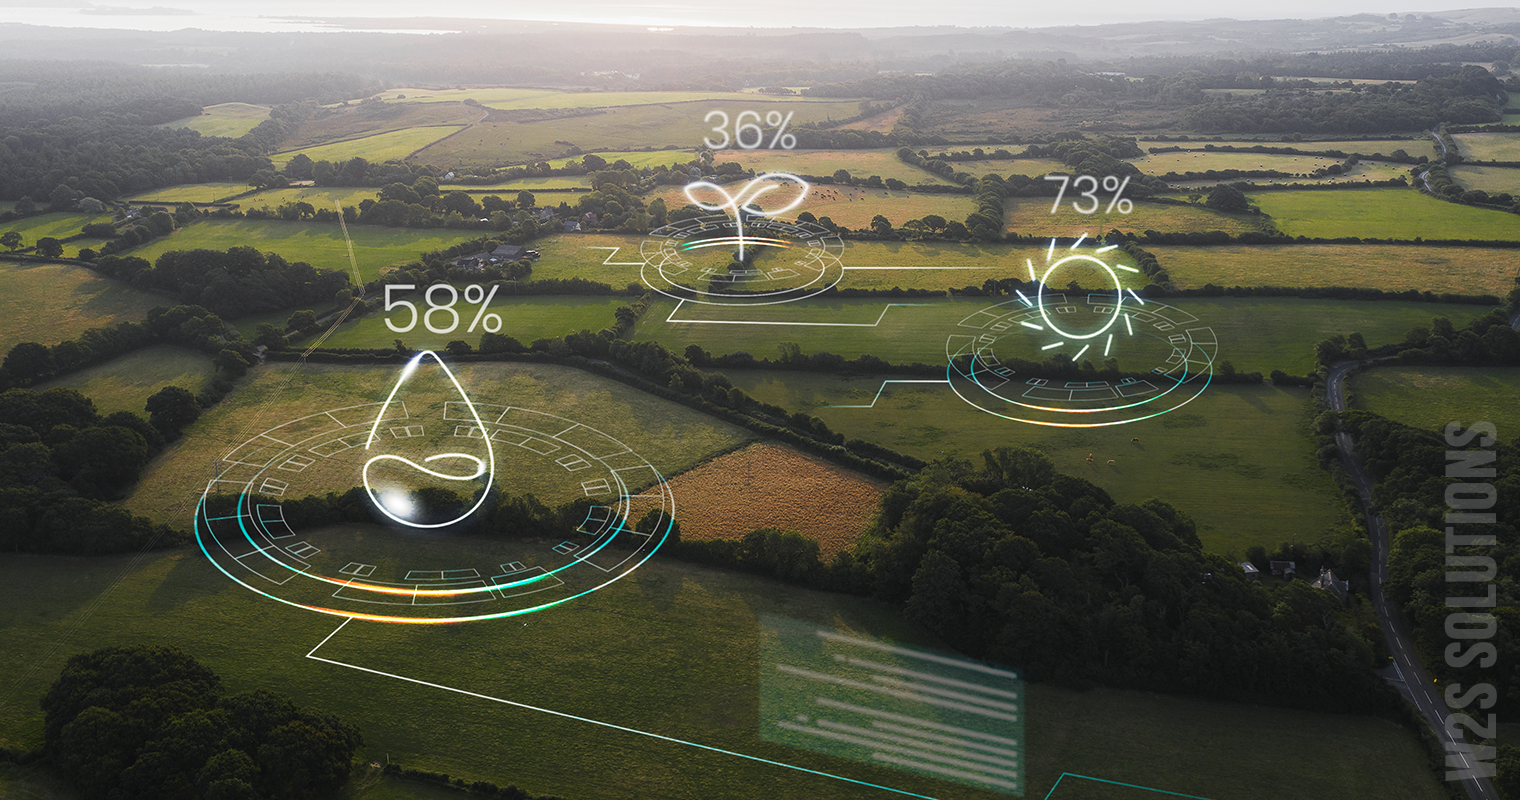 Smart farming solutions and transforming cultivation according to the current trends